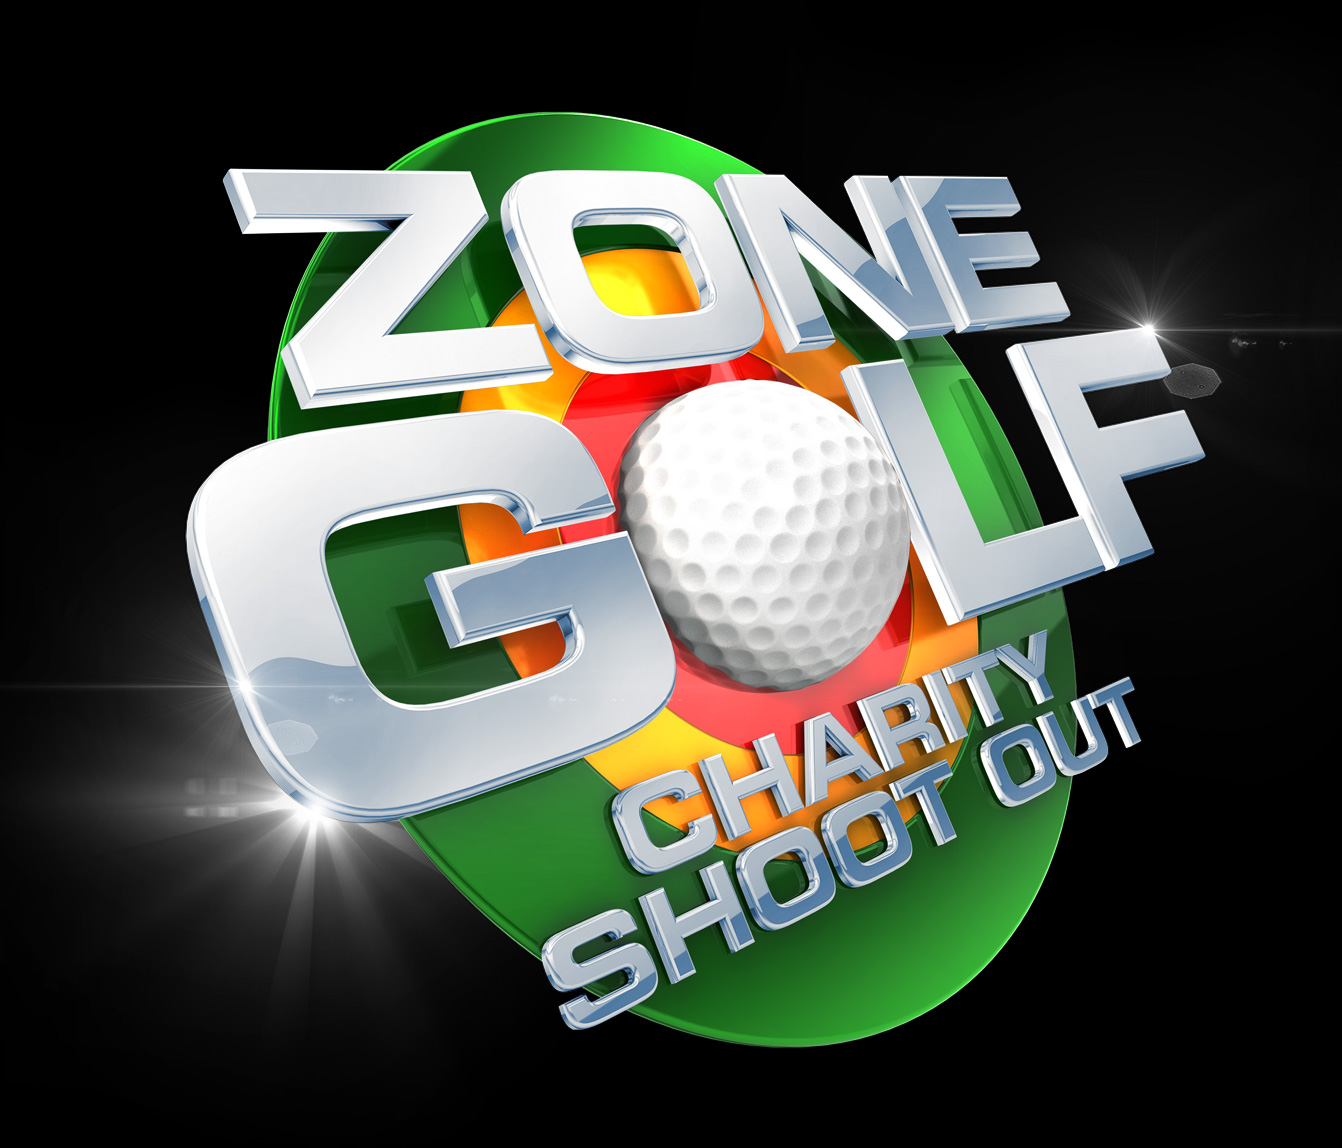 Zone Golf Charity Shoot Out